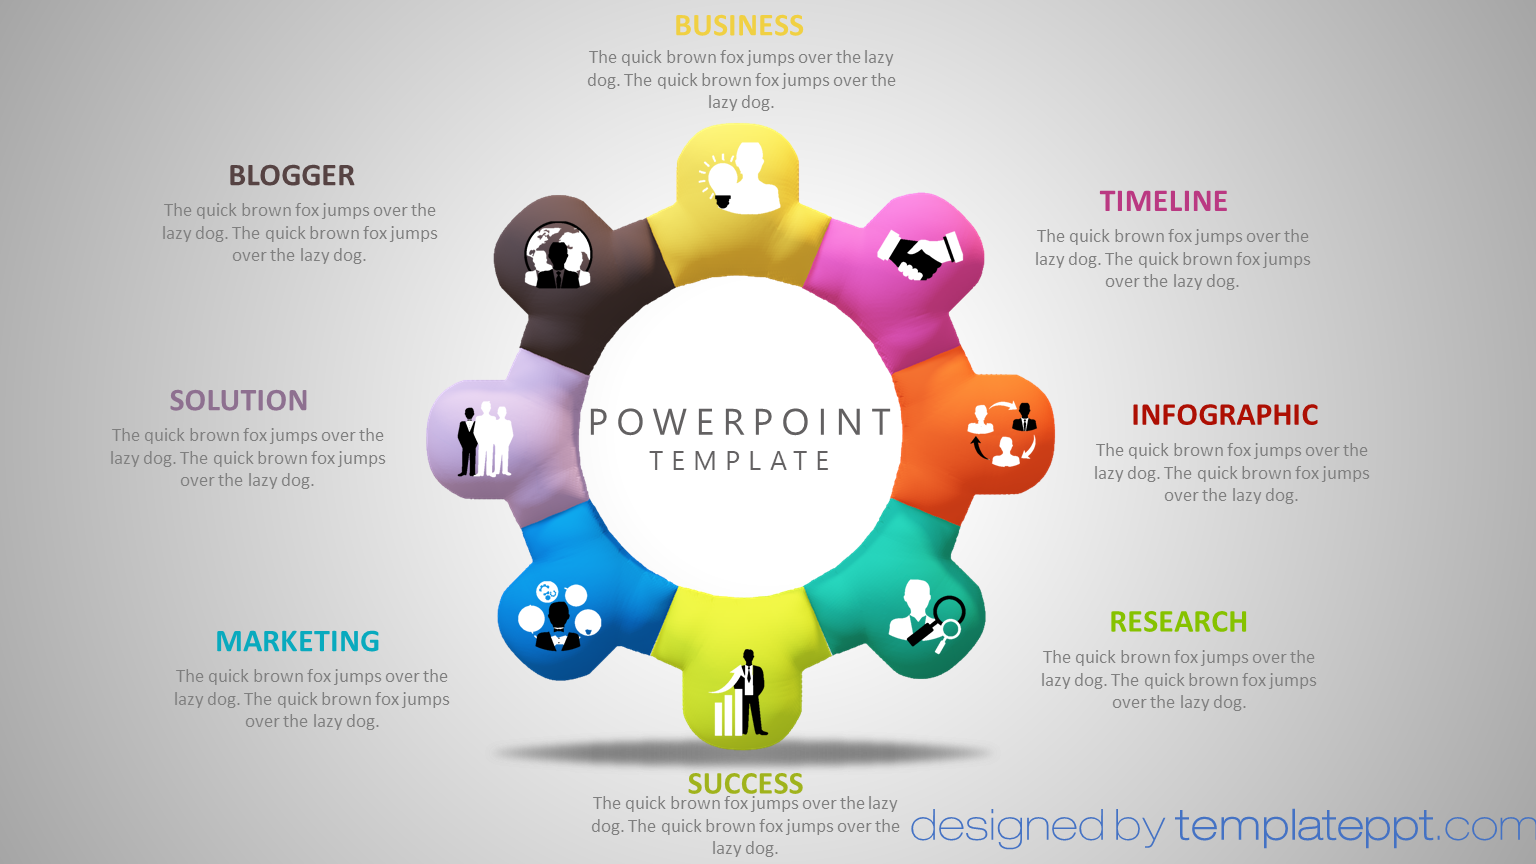 powerpoint presentation effects free download koni polycode co